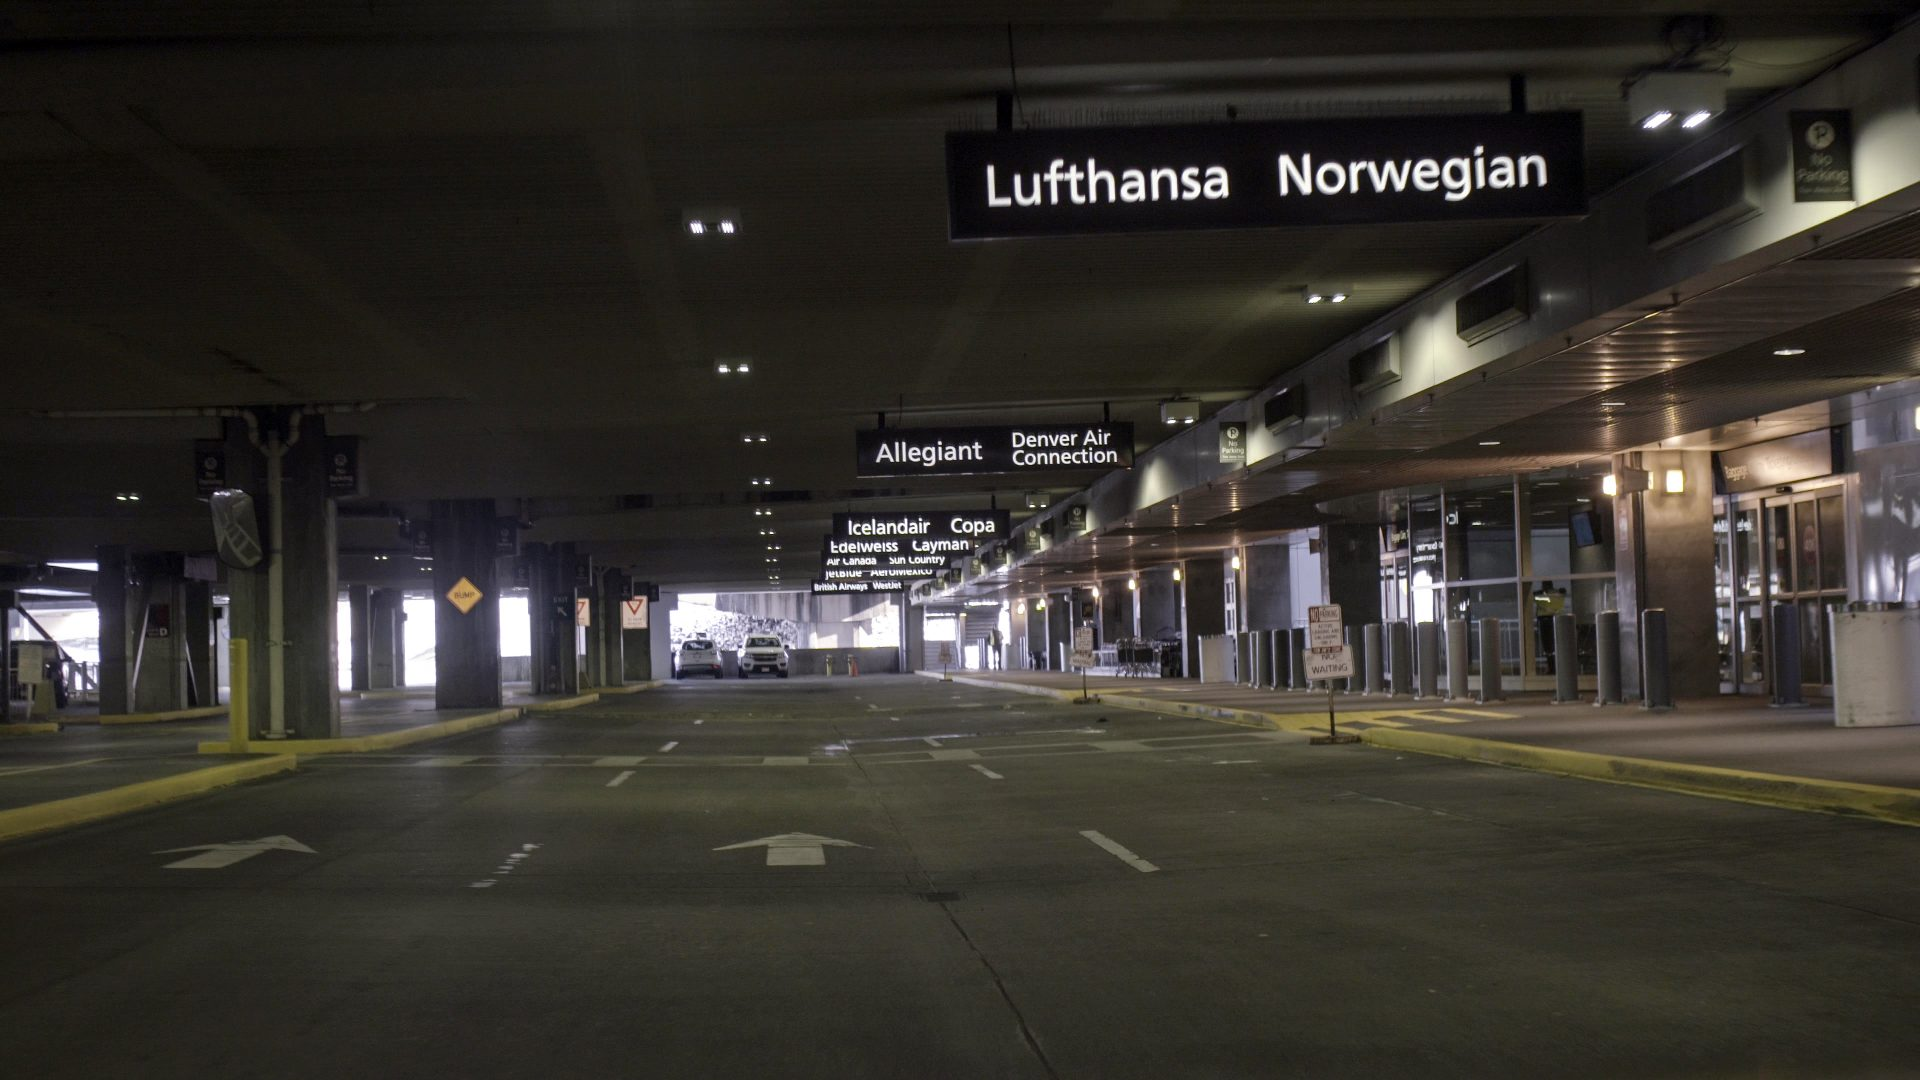 Screengrab from Sony A7rII of an empty arrivals area at DIA.